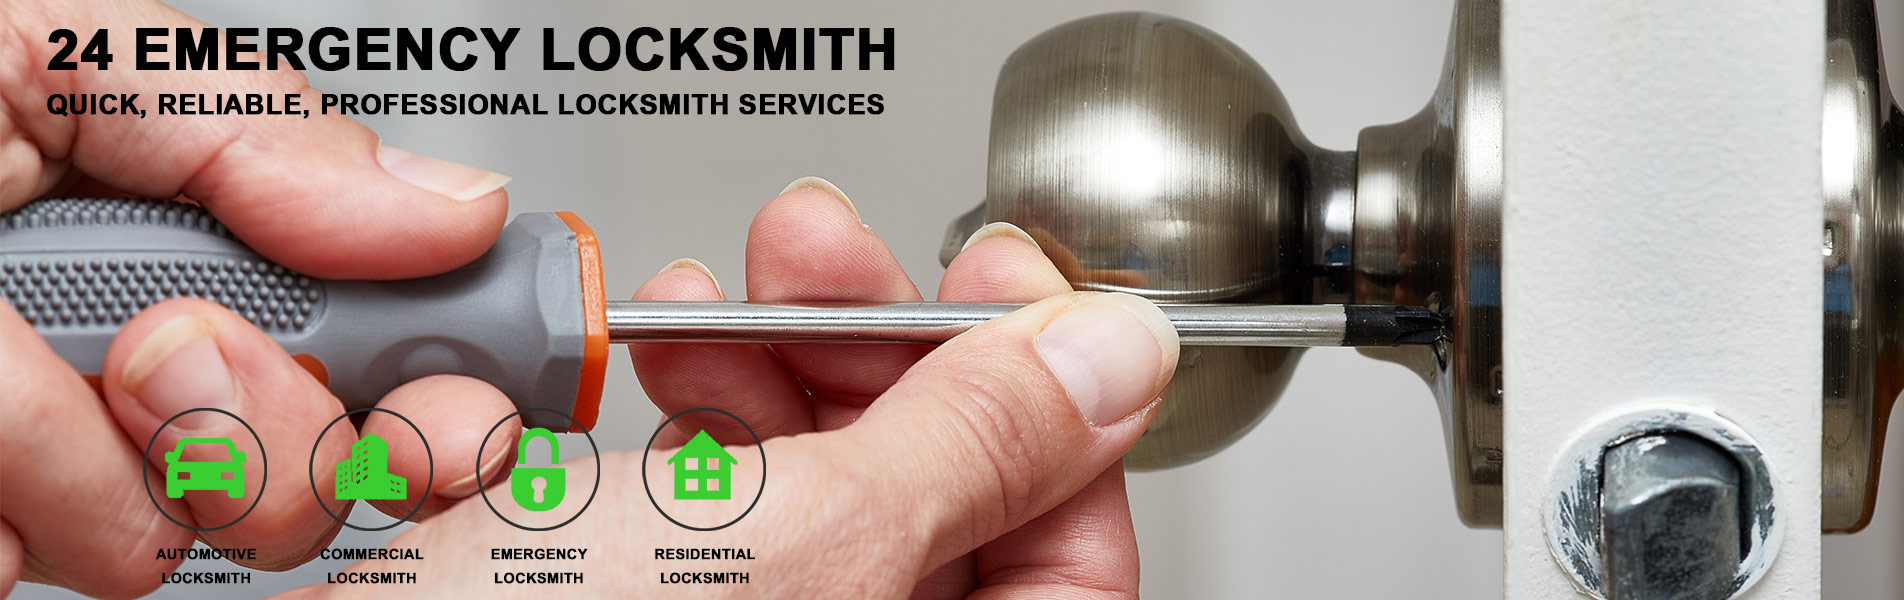 Burlingam Locksmith Burlingame, CA 650-235-1920